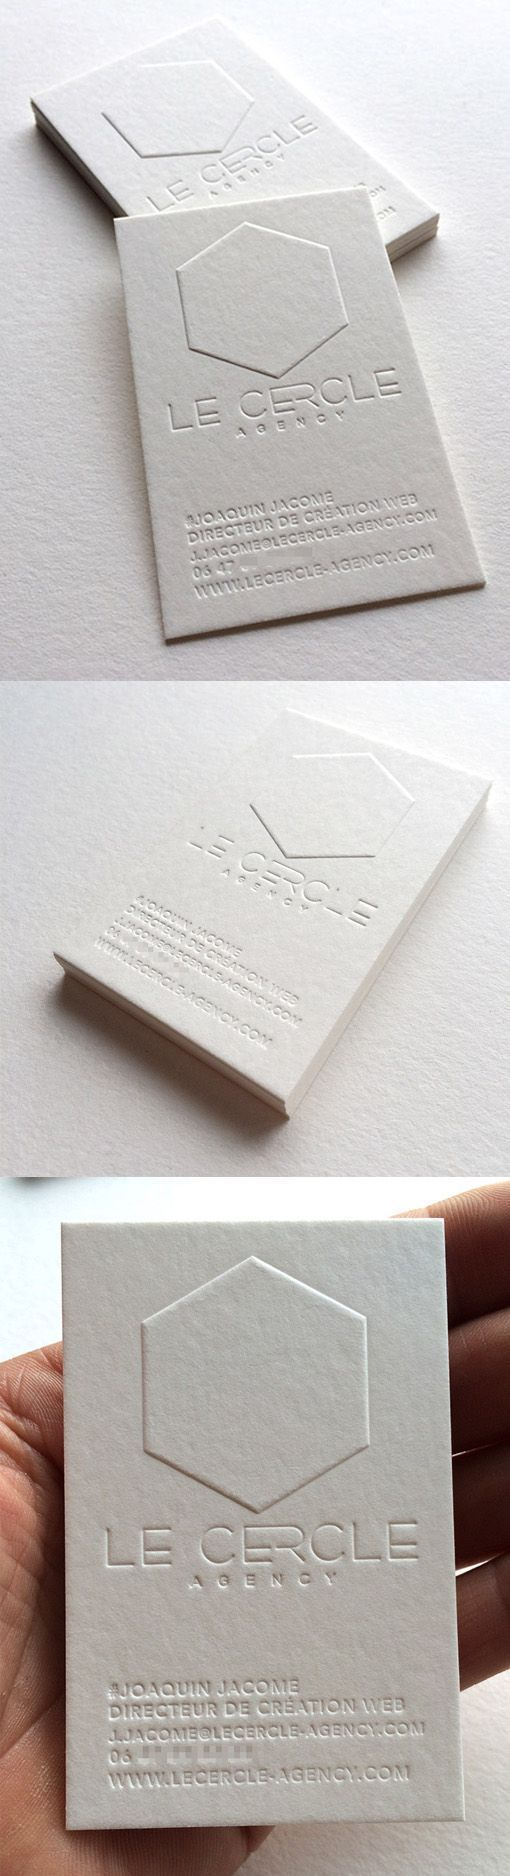 15 best embossing business cards images on pinterest card stock 15 best embossing business cards images on pinterest card stock logos and stamping magicingreecefo Image collections